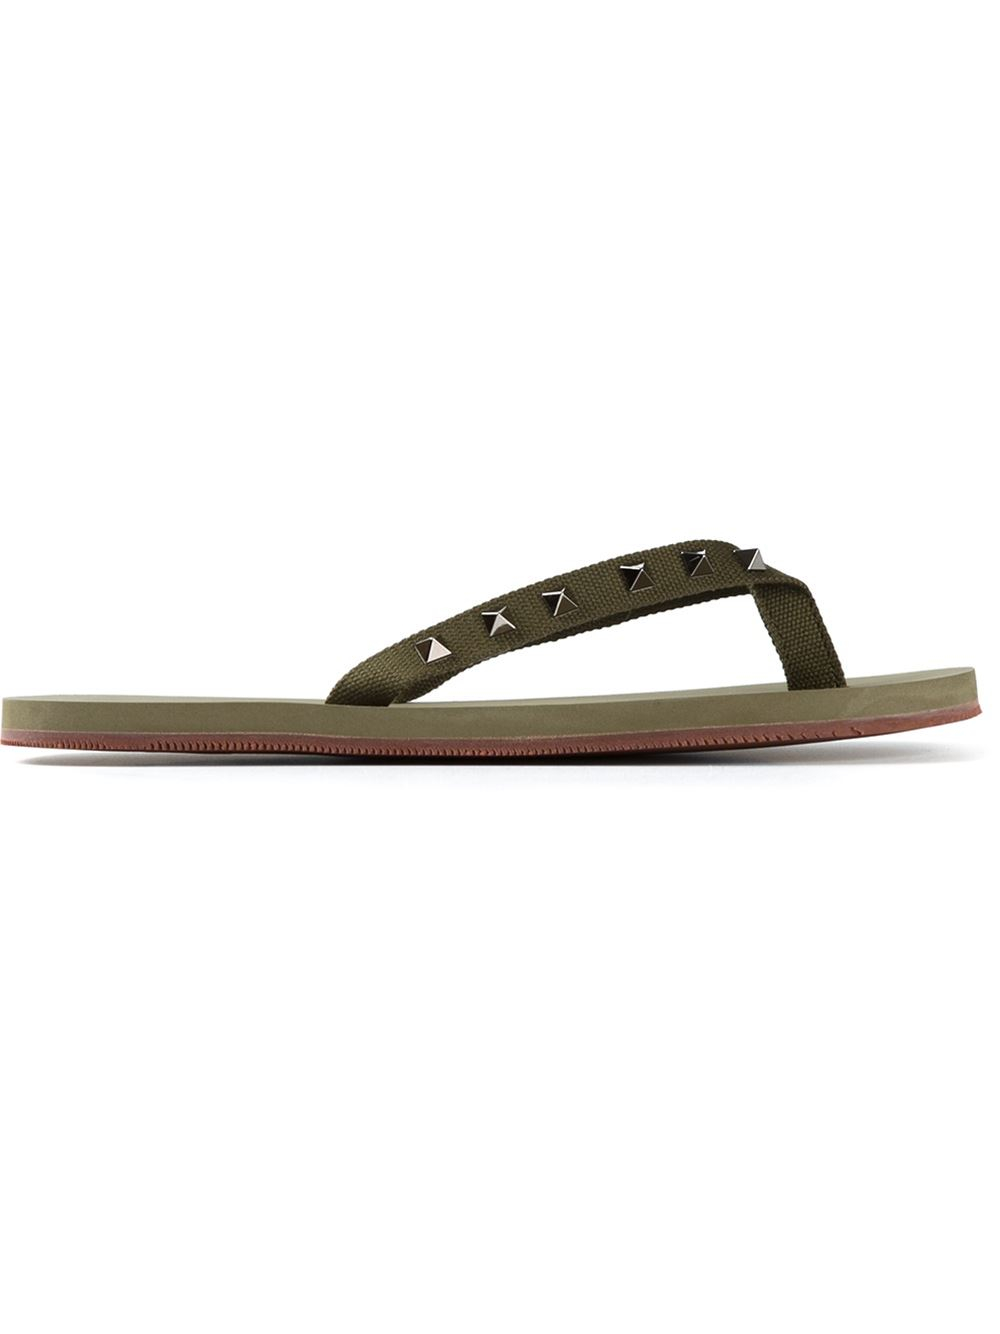 valentino rockstud flip flops in green for men lyst. Black Bedroom Furniture Sets. Home Design Ideas